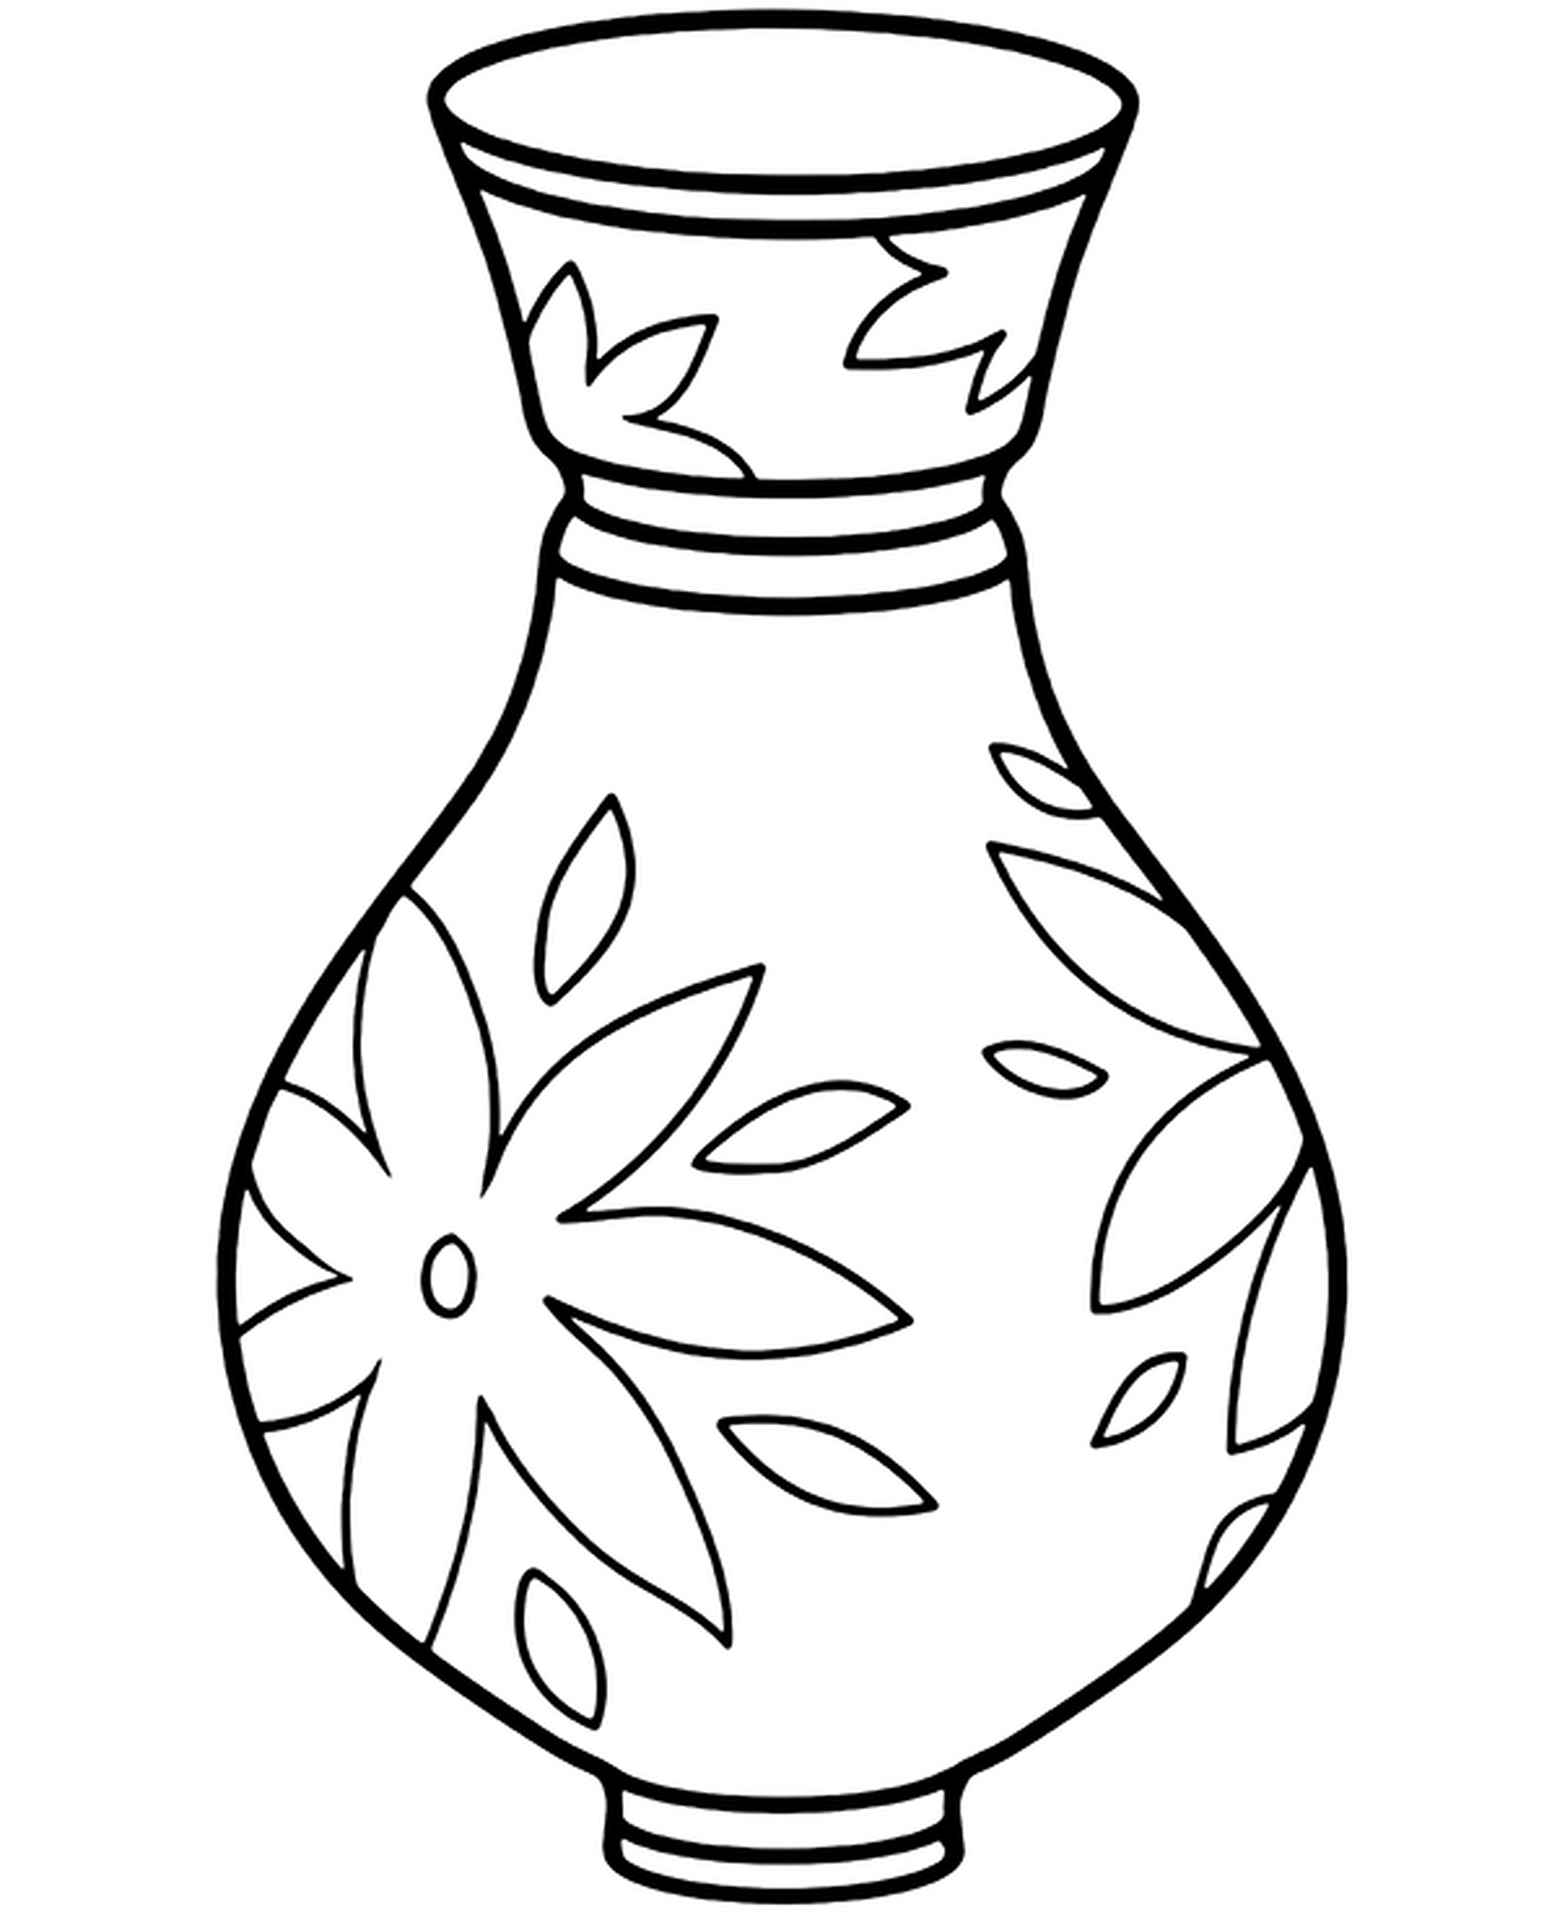 Vase With Patterns For Flowers Coloring Image